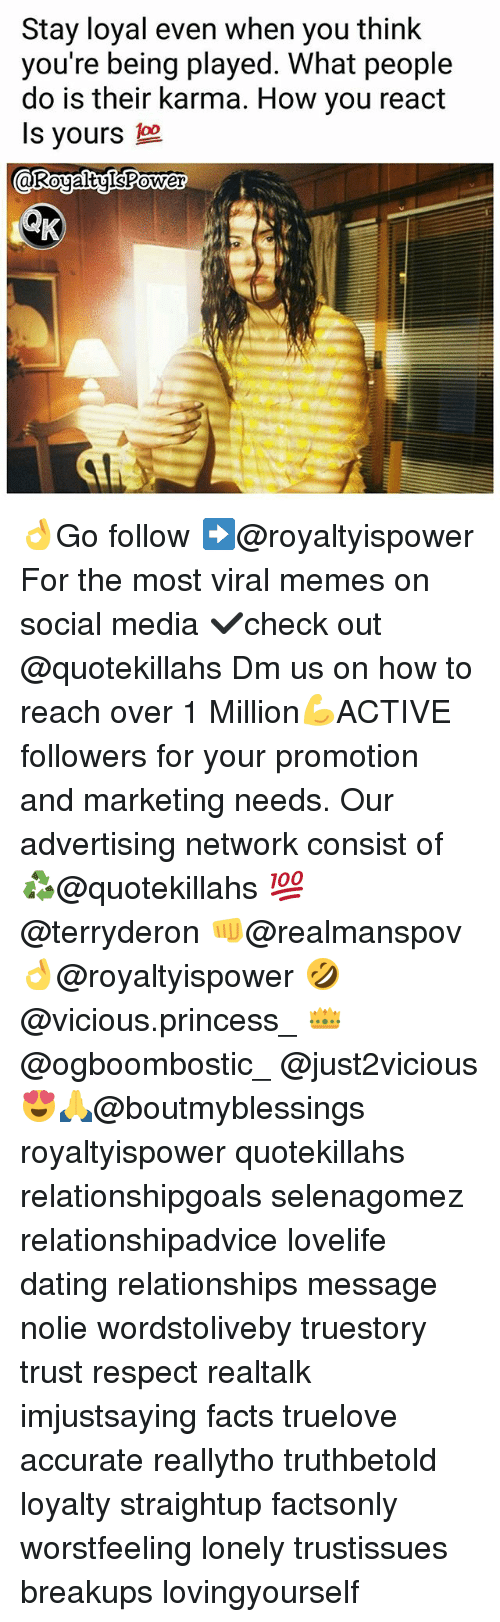 Dating, Facts, and Memes: Stay loyal even when you think  you're being played. What people  do is their karma. How you react  Is yours  KoualtulsPower  0 👌Go follow ➡@royaltyispower For the most viral memes on social media ✔check out @quotekillahs Dm us on how to reach over 1 Million💪ACTIVE followers for your promotion and marketing needs. Our advertising network consist of ♻@quotekillahs 💯@terryderon 👊@realmanspov 👌@royaltyispower 🤣@vicious.princess_ 👑@ogboombostic_ @just2vicious😍🙏@boutmyblessings royaltyispower quotekillahs relationshipgoals selenagomez relationshipadvice lovelife dating relationships message nolie wordstoliveby truestory trust respect realtalk imjustsaying facts truelove accurate reallytho truthbetold loyalty straightup factsonly worstfeeling lonely trustissues breakups lovingyourself